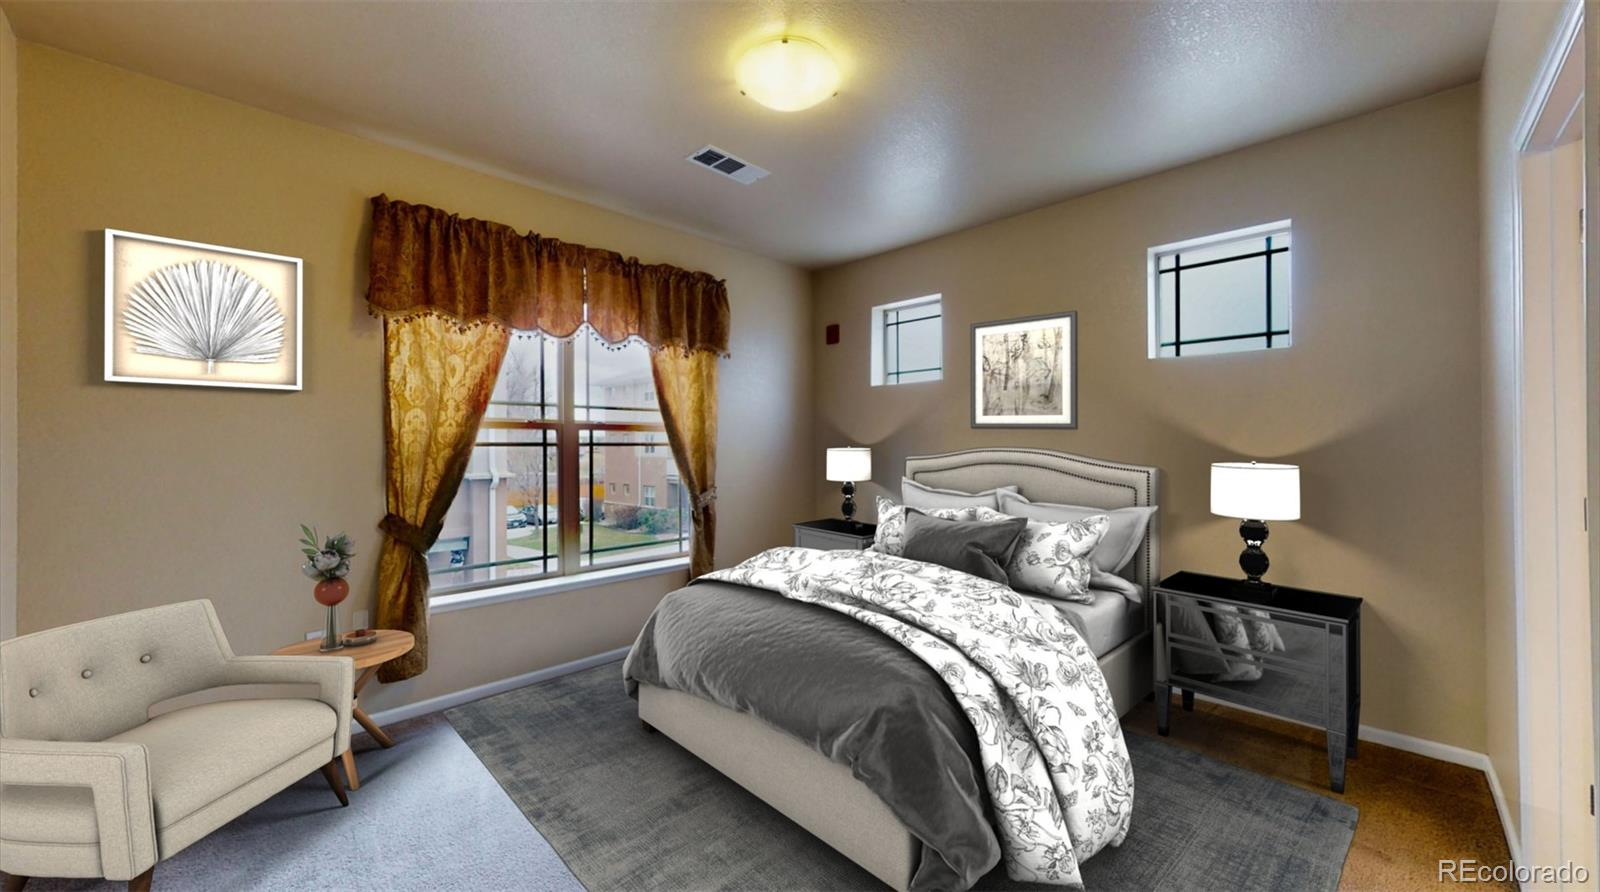 MLS# 3562922 - 8 - 8123 W 51st Place #202, Arvada, CO 80002